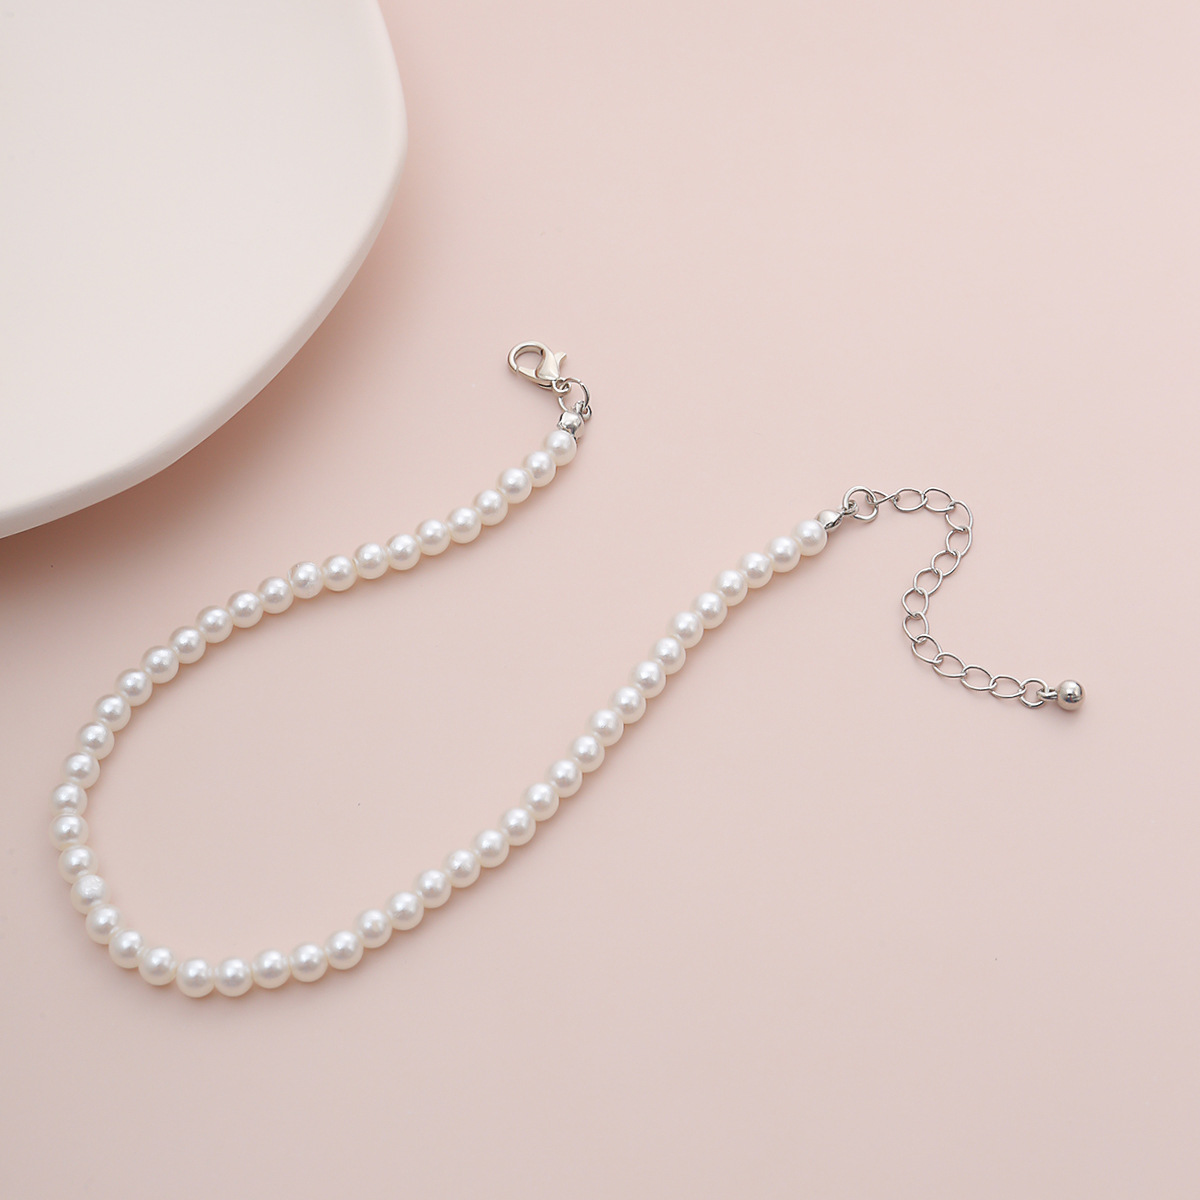 Bohemian Simulated Pearl Anklet Bracelet for Women Charm Ankle Chain Barefoot Sandals On Foot Leg Jewelry